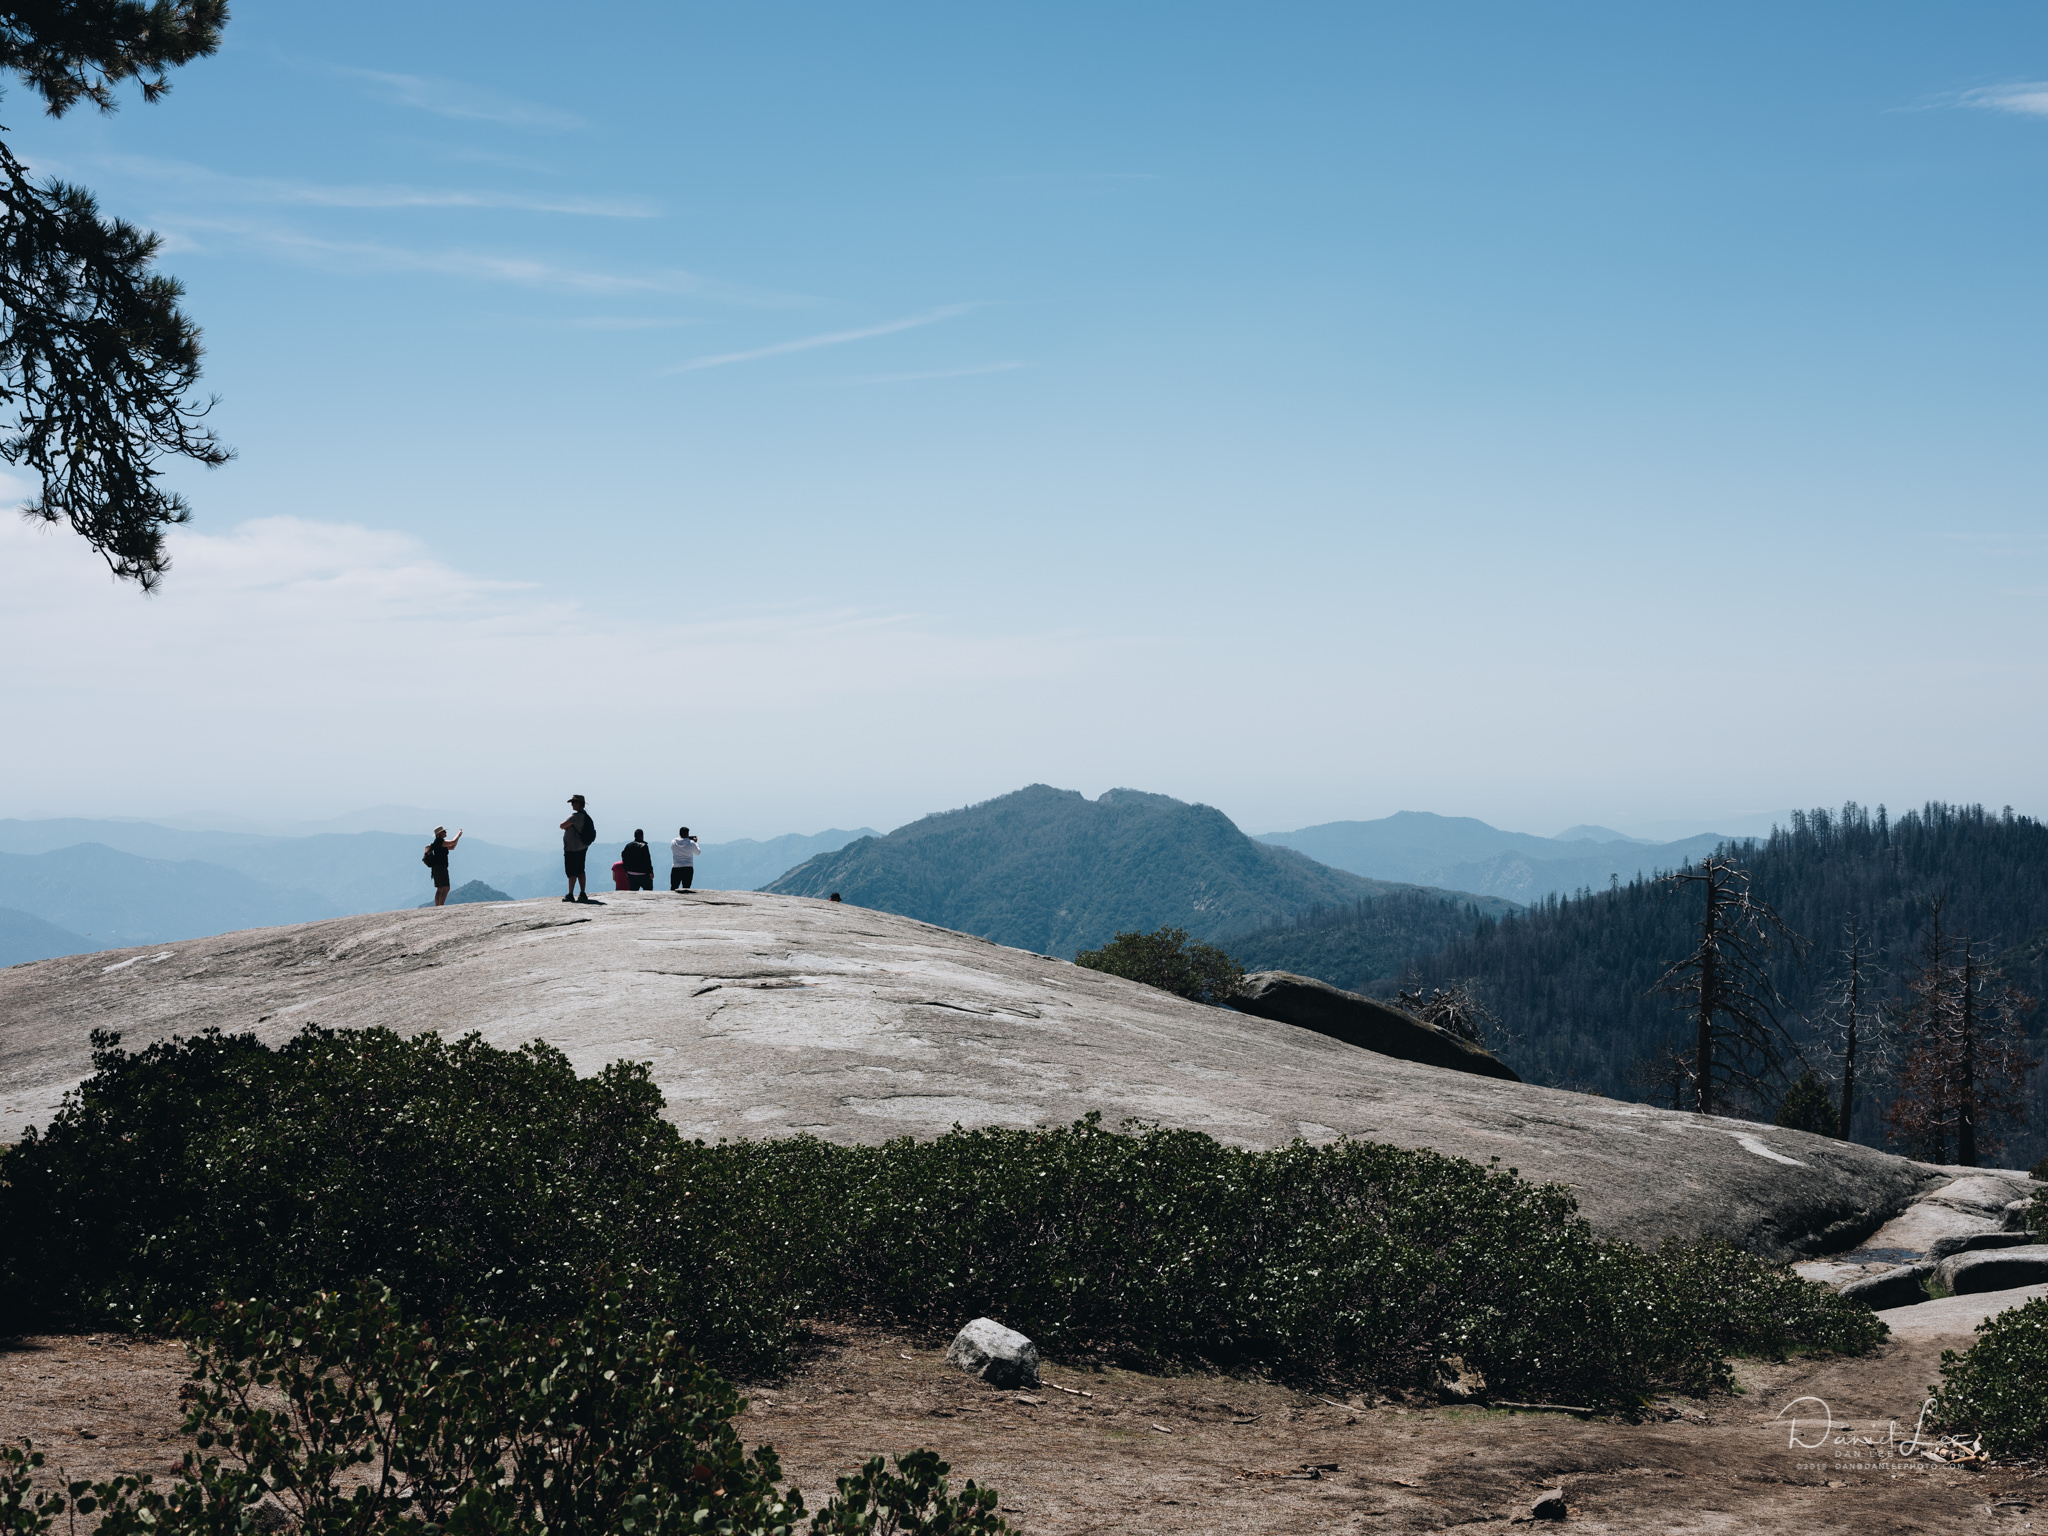 Beetle Rock in Sequoia National Park. For Pursuits with Enterprise. Photo by Daniel Lee.